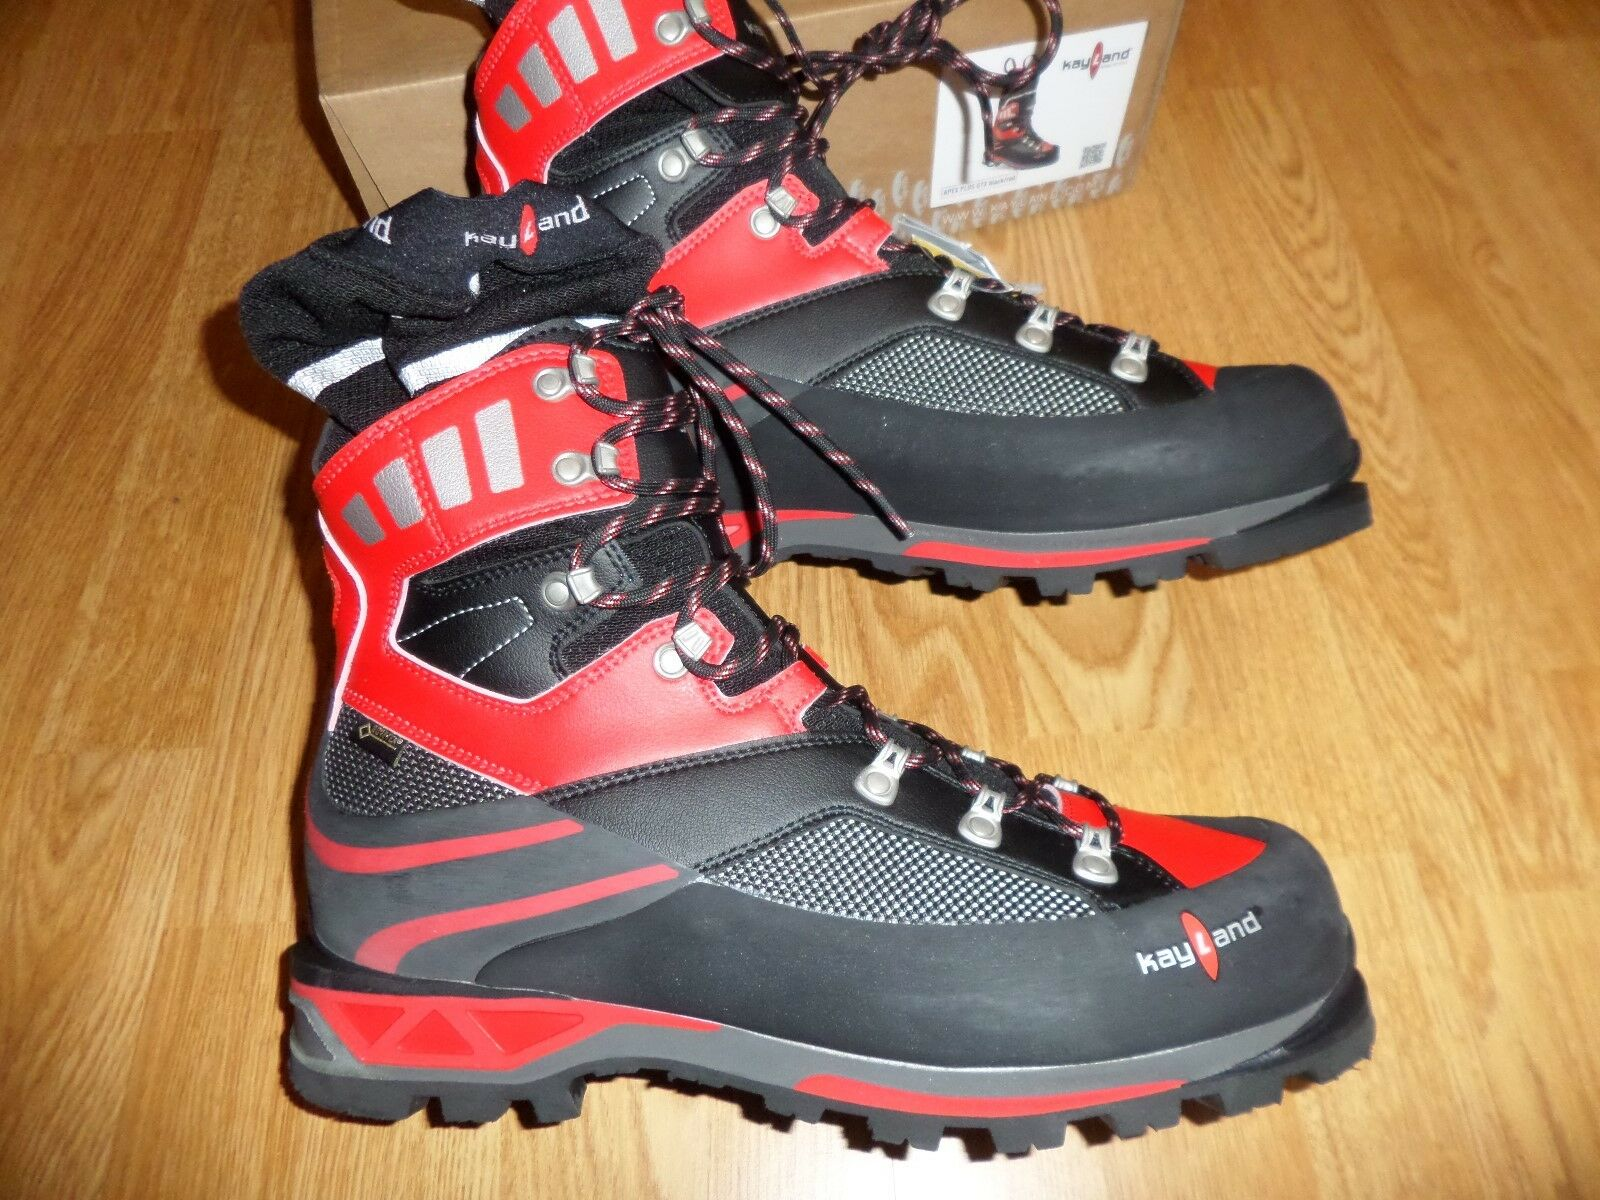 KAYLAND  APEX PLUS GORE-TEX MOUNTAINEERING BOOTS MEN'S 11 M FIT 10.5 RETAIL  390  after-sale protection